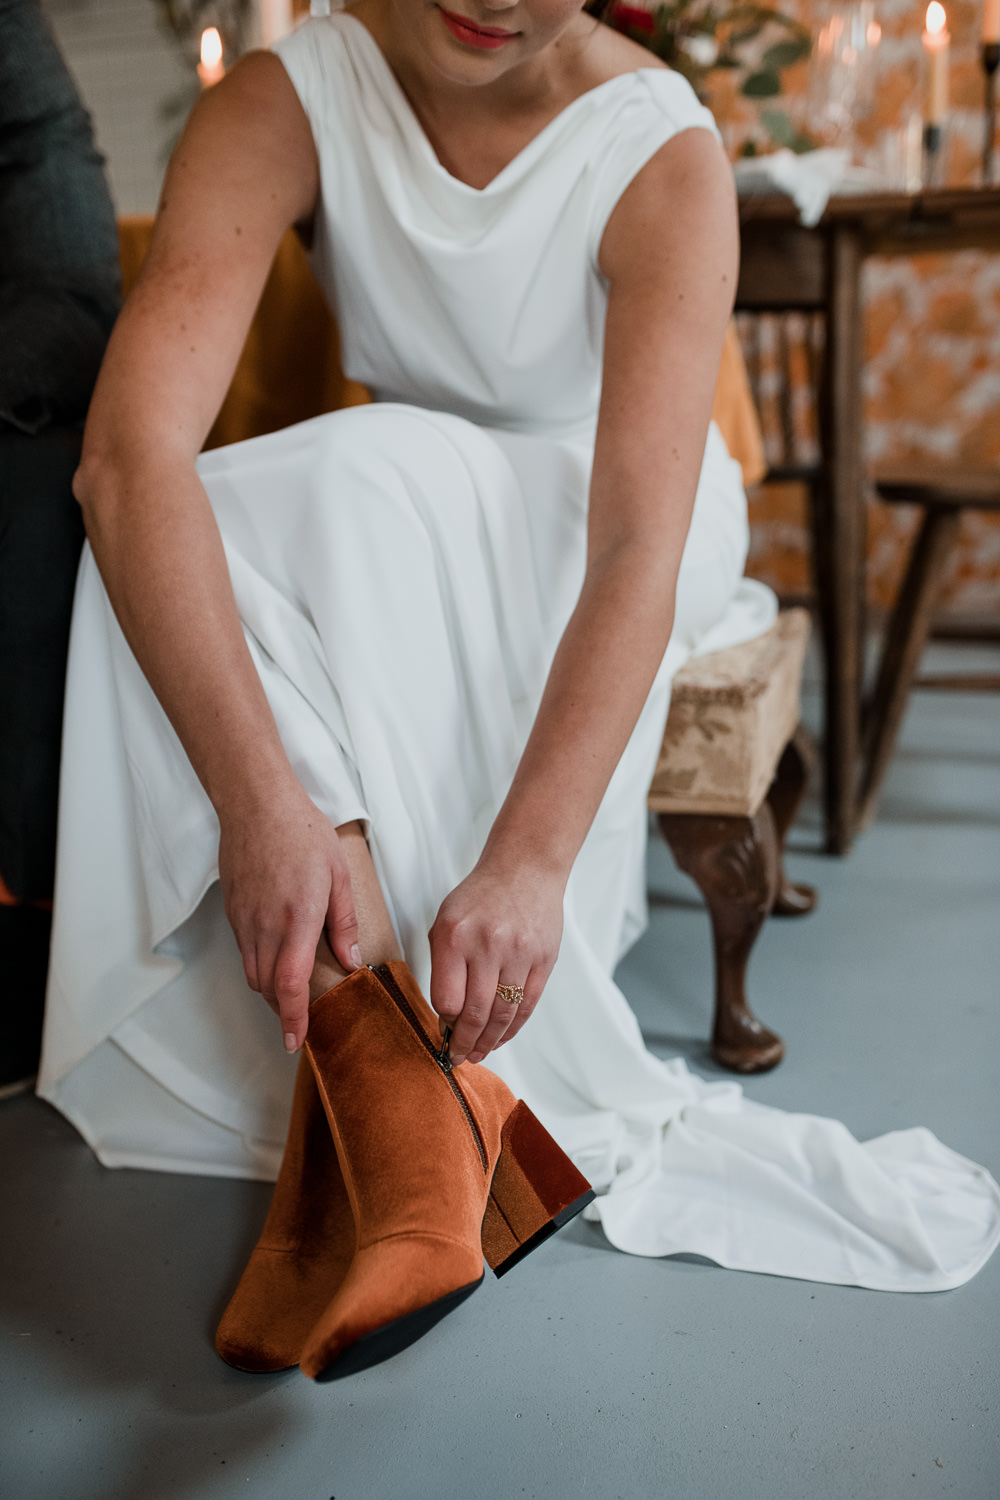 Tan Orange Boots Bride Bridal Shoes 1970 Retro Mid Century Wedding Ideas Laura Martha Photography